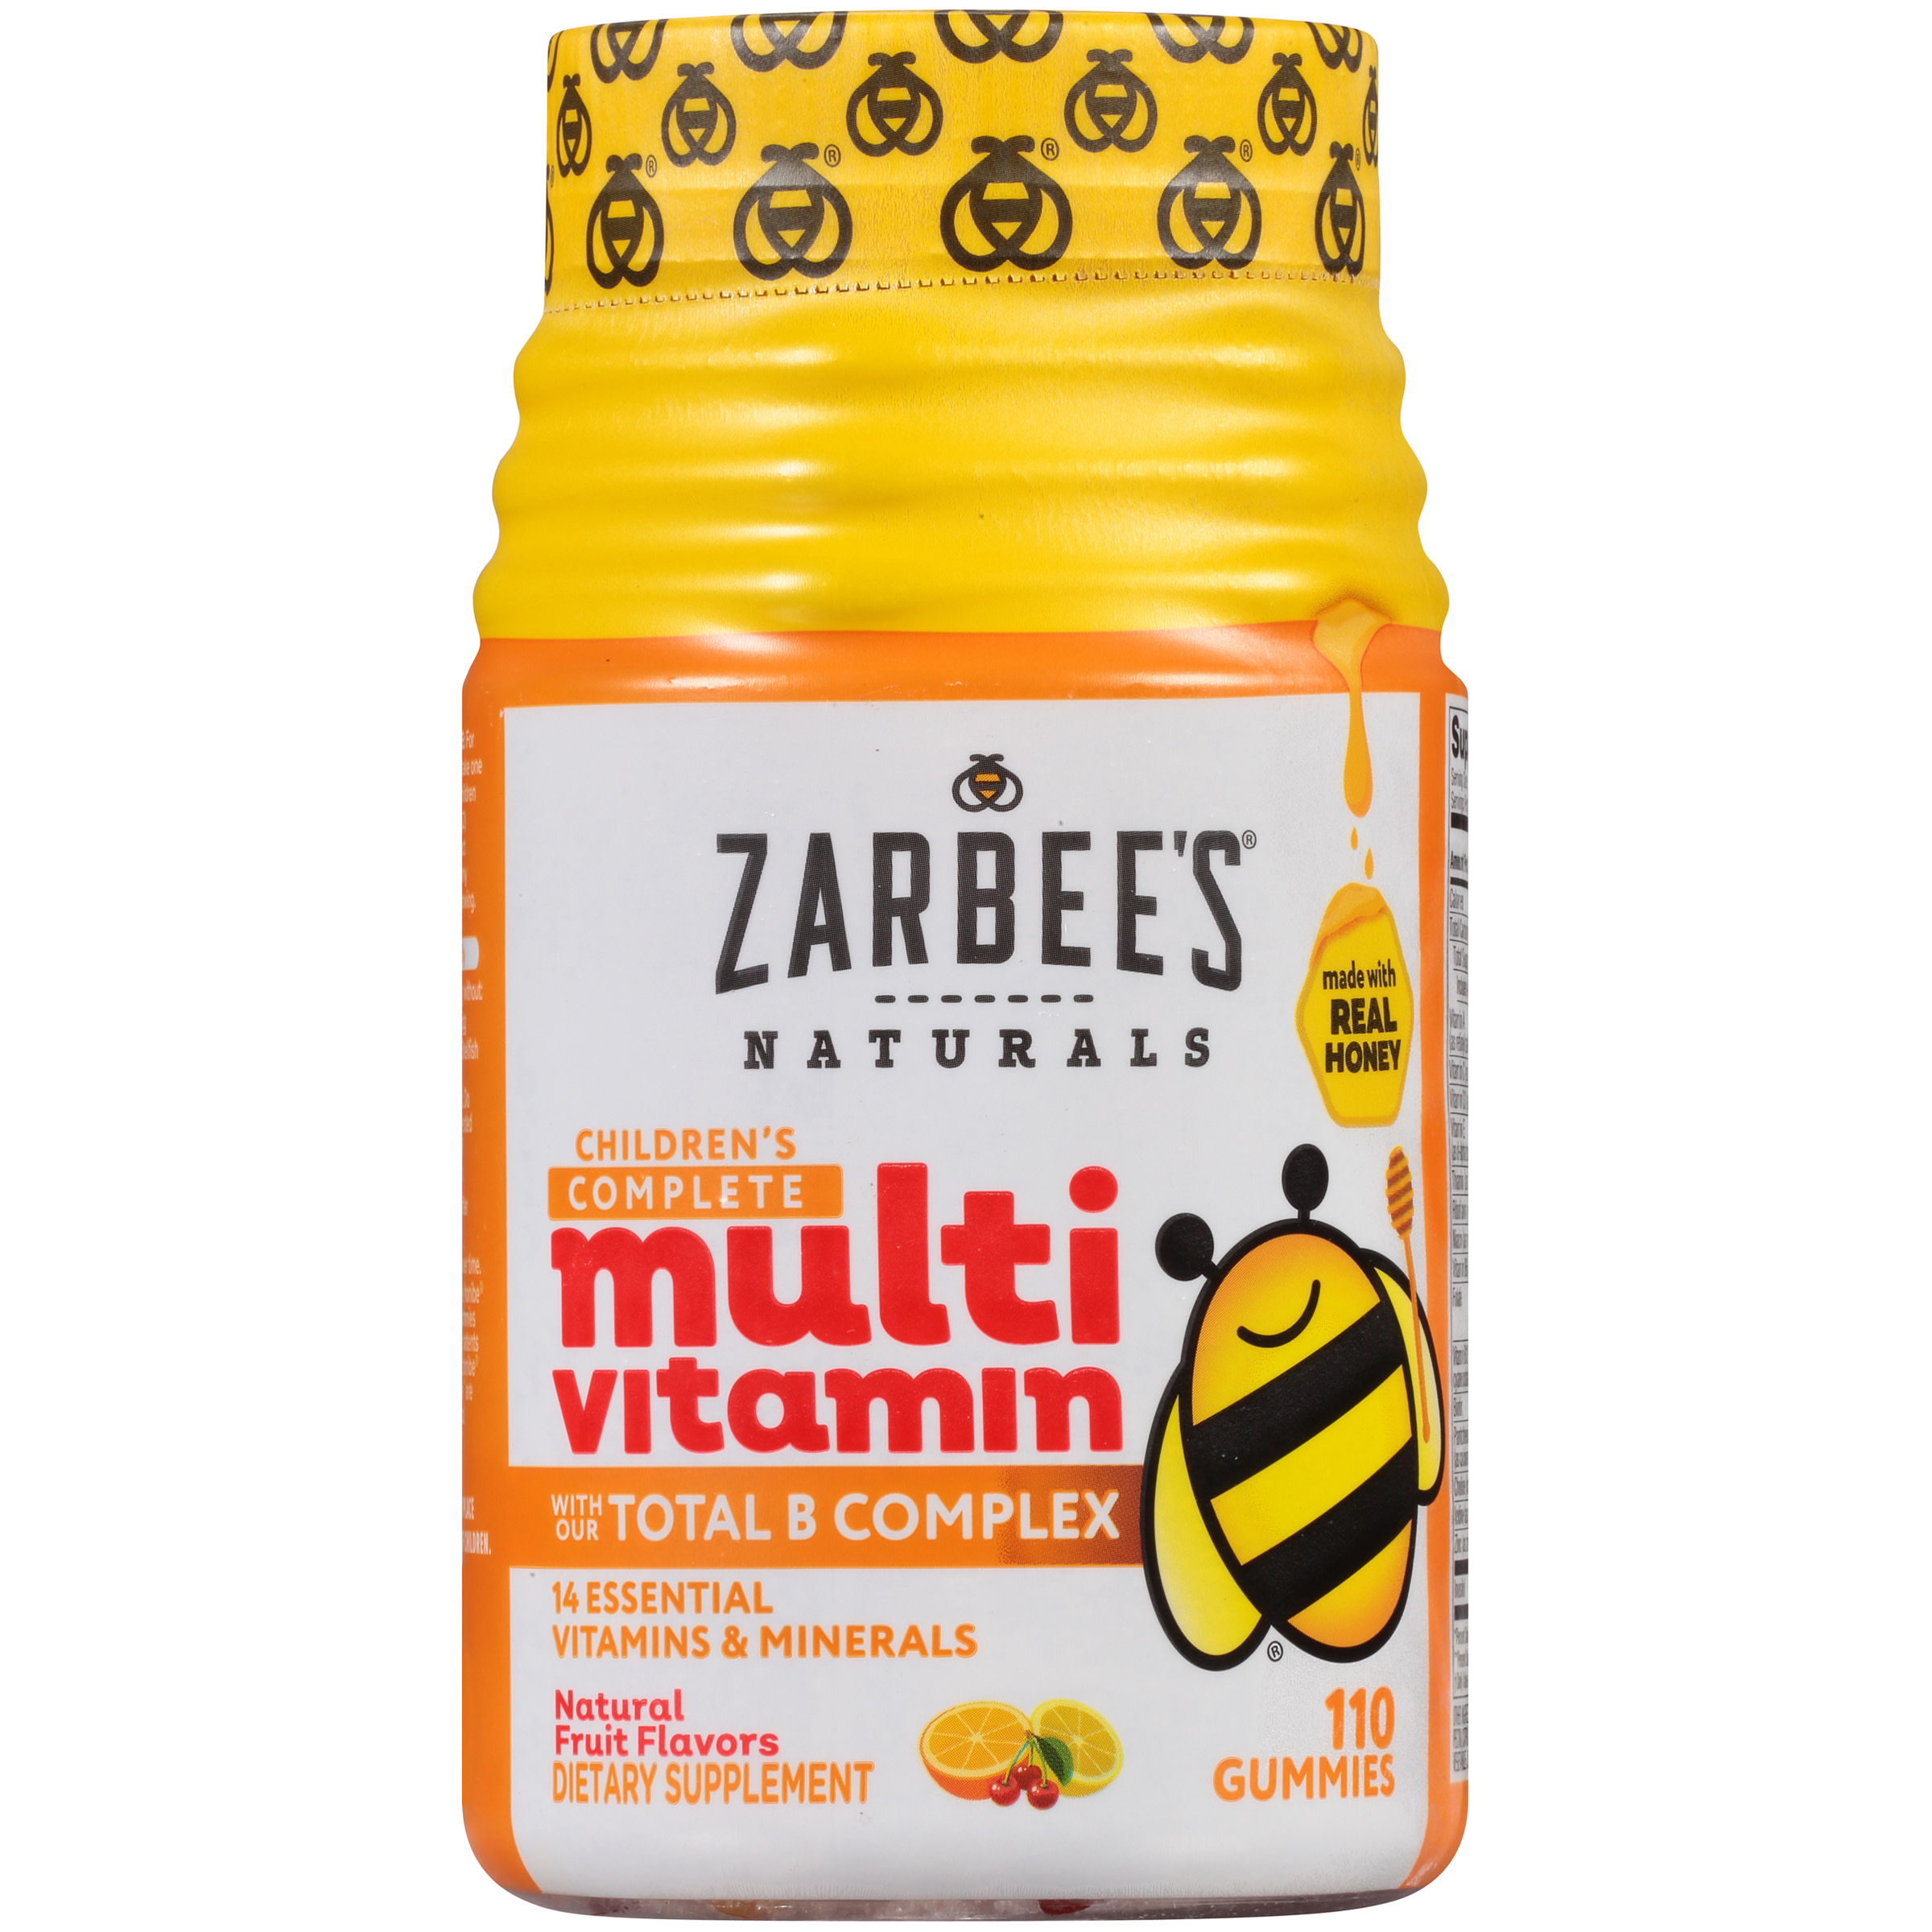 Zarbee's Naturals Children's Complete Multivitamin Gummies with our Total B Complex and Essential Vitamins, Natural Fruit Flavors, 110 Gummies (1 Bottle)